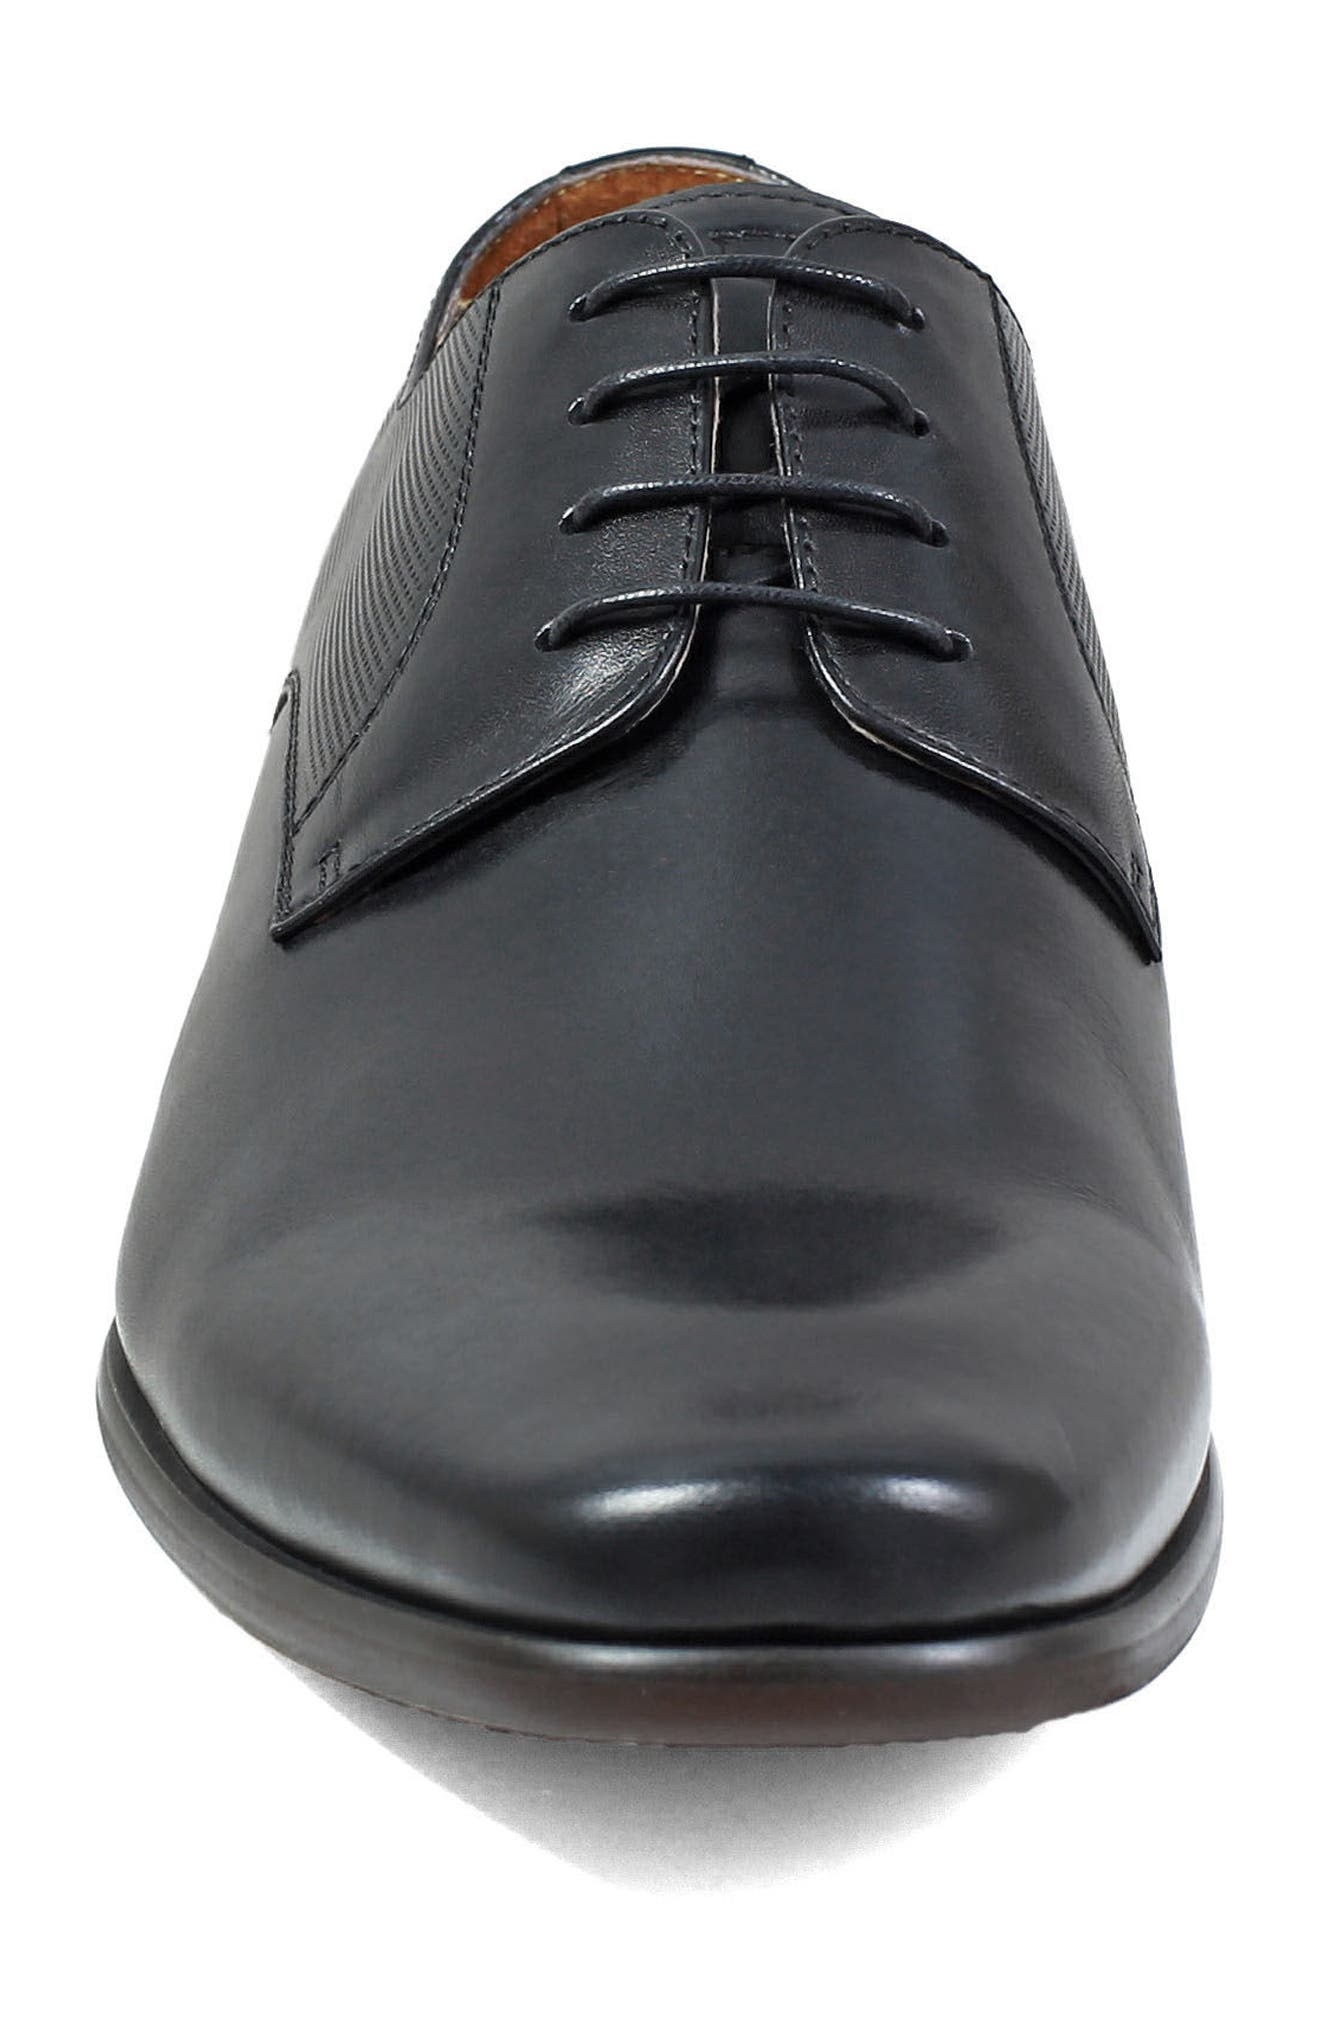 Postino Textured Plain Toe Derby,                             Alternate thumbnail 4, color,                             BLACK LEATHER